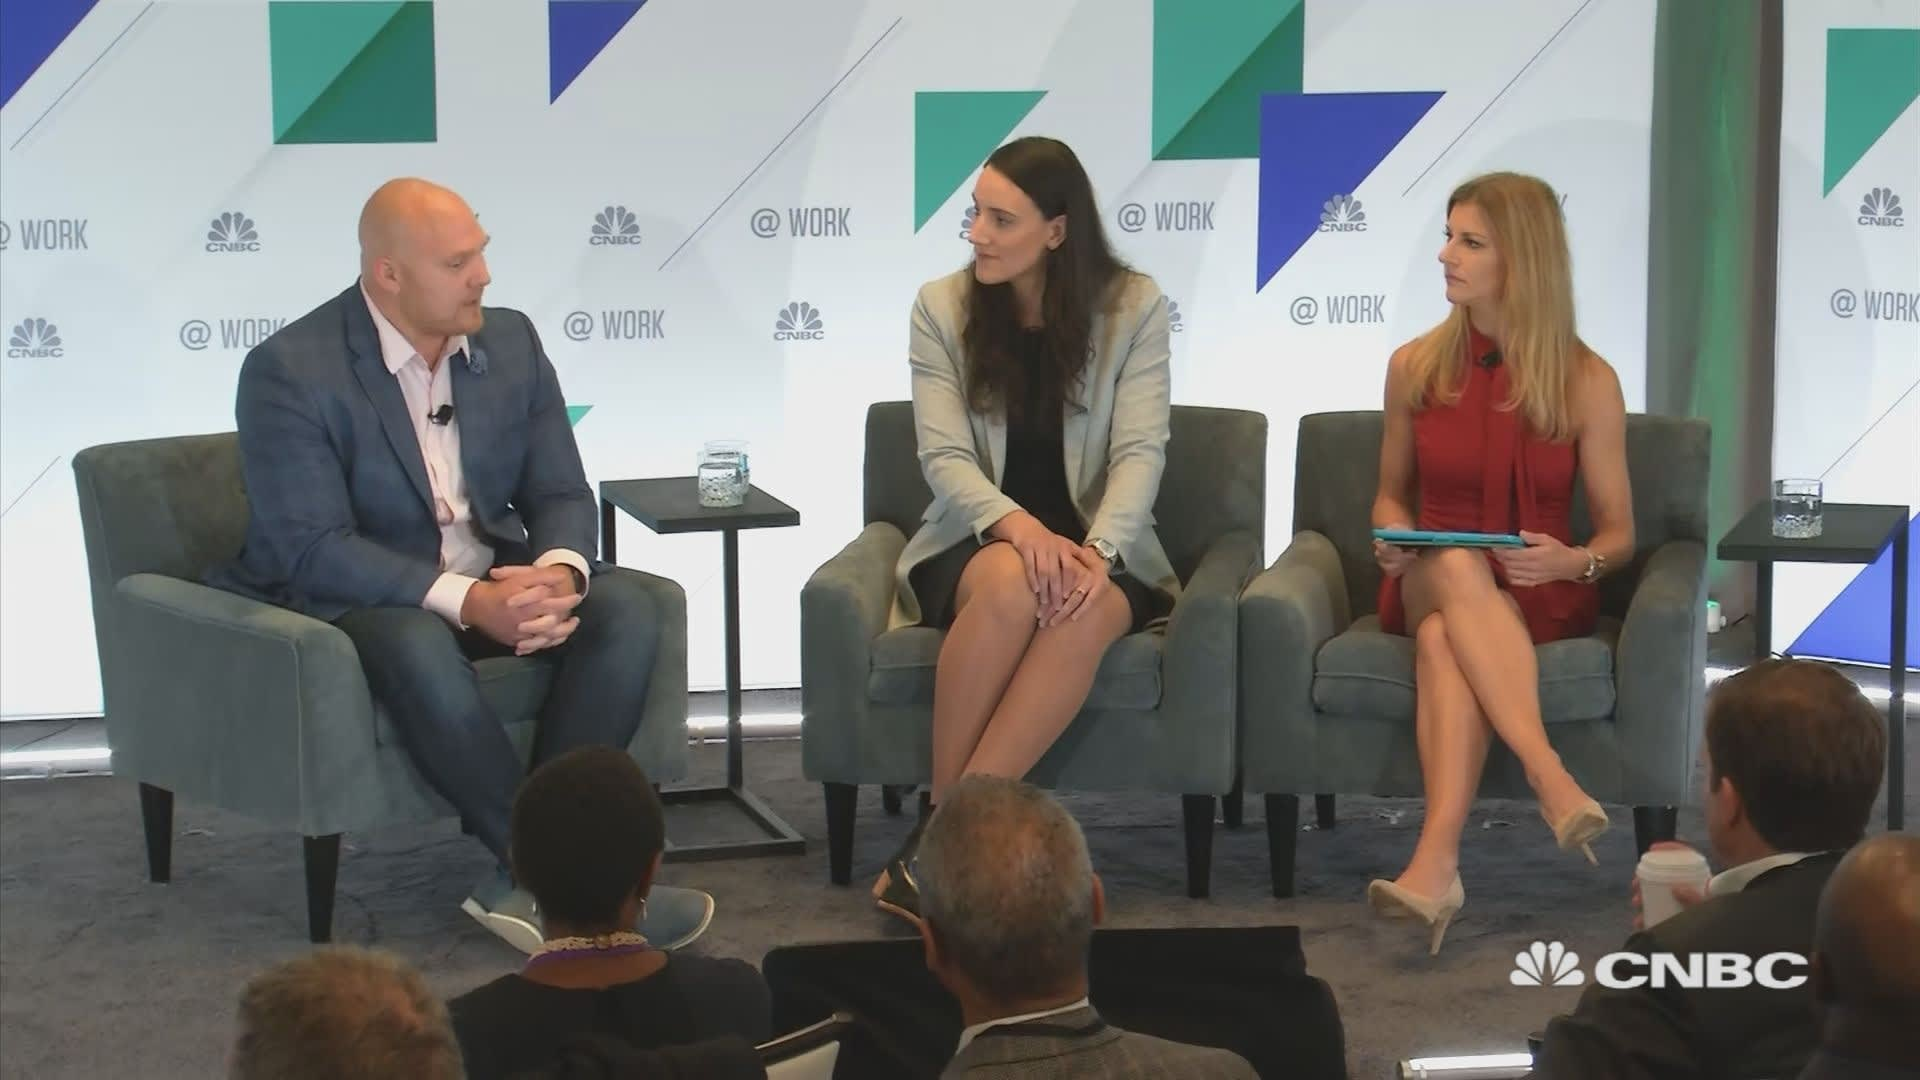 CNBC's @Work Human Capital + Finance Summit: Investing in the future of work